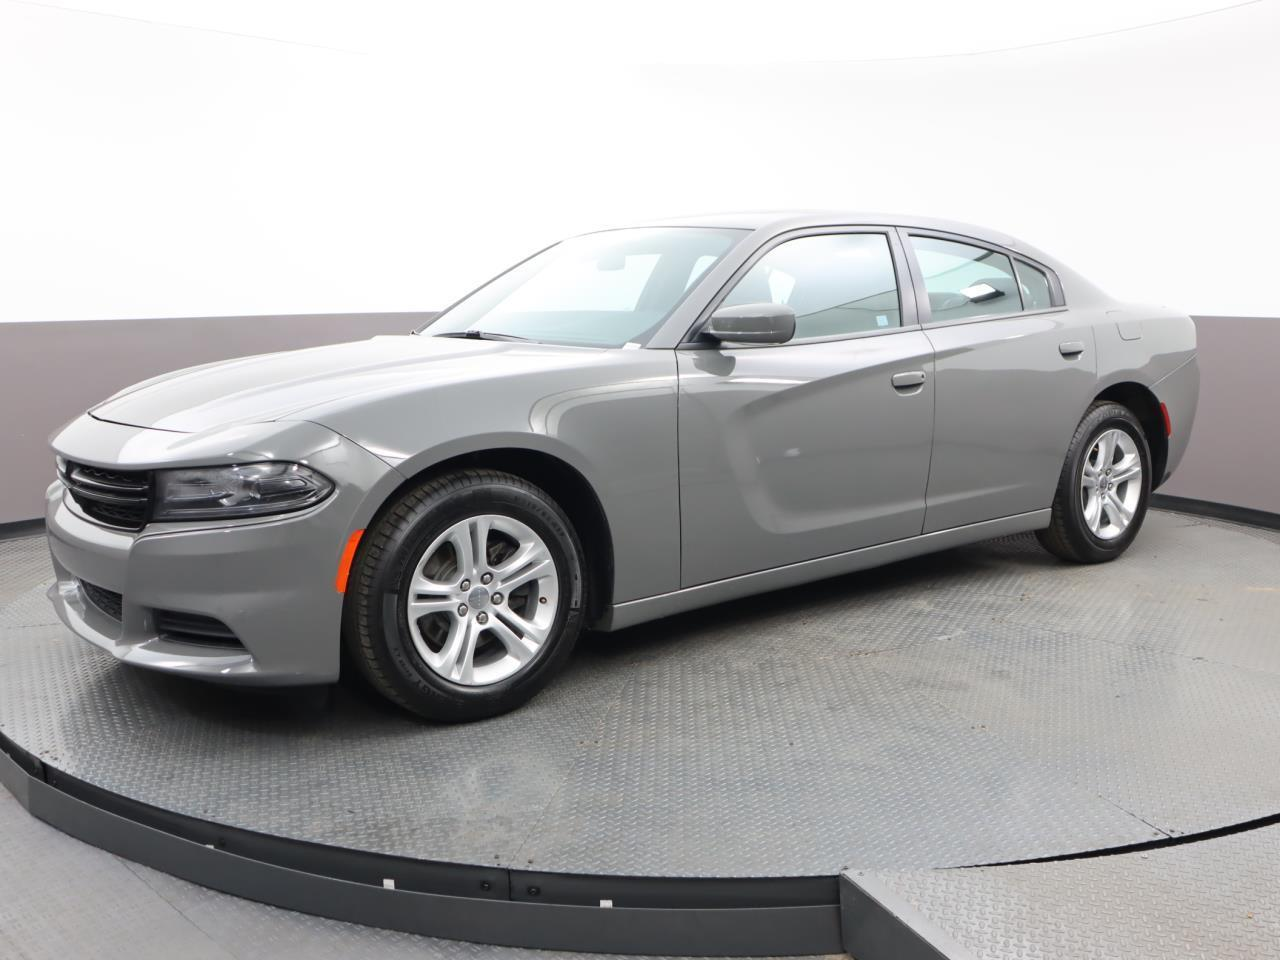 Used DODGE CHARGER 2019 MARGATE SXT